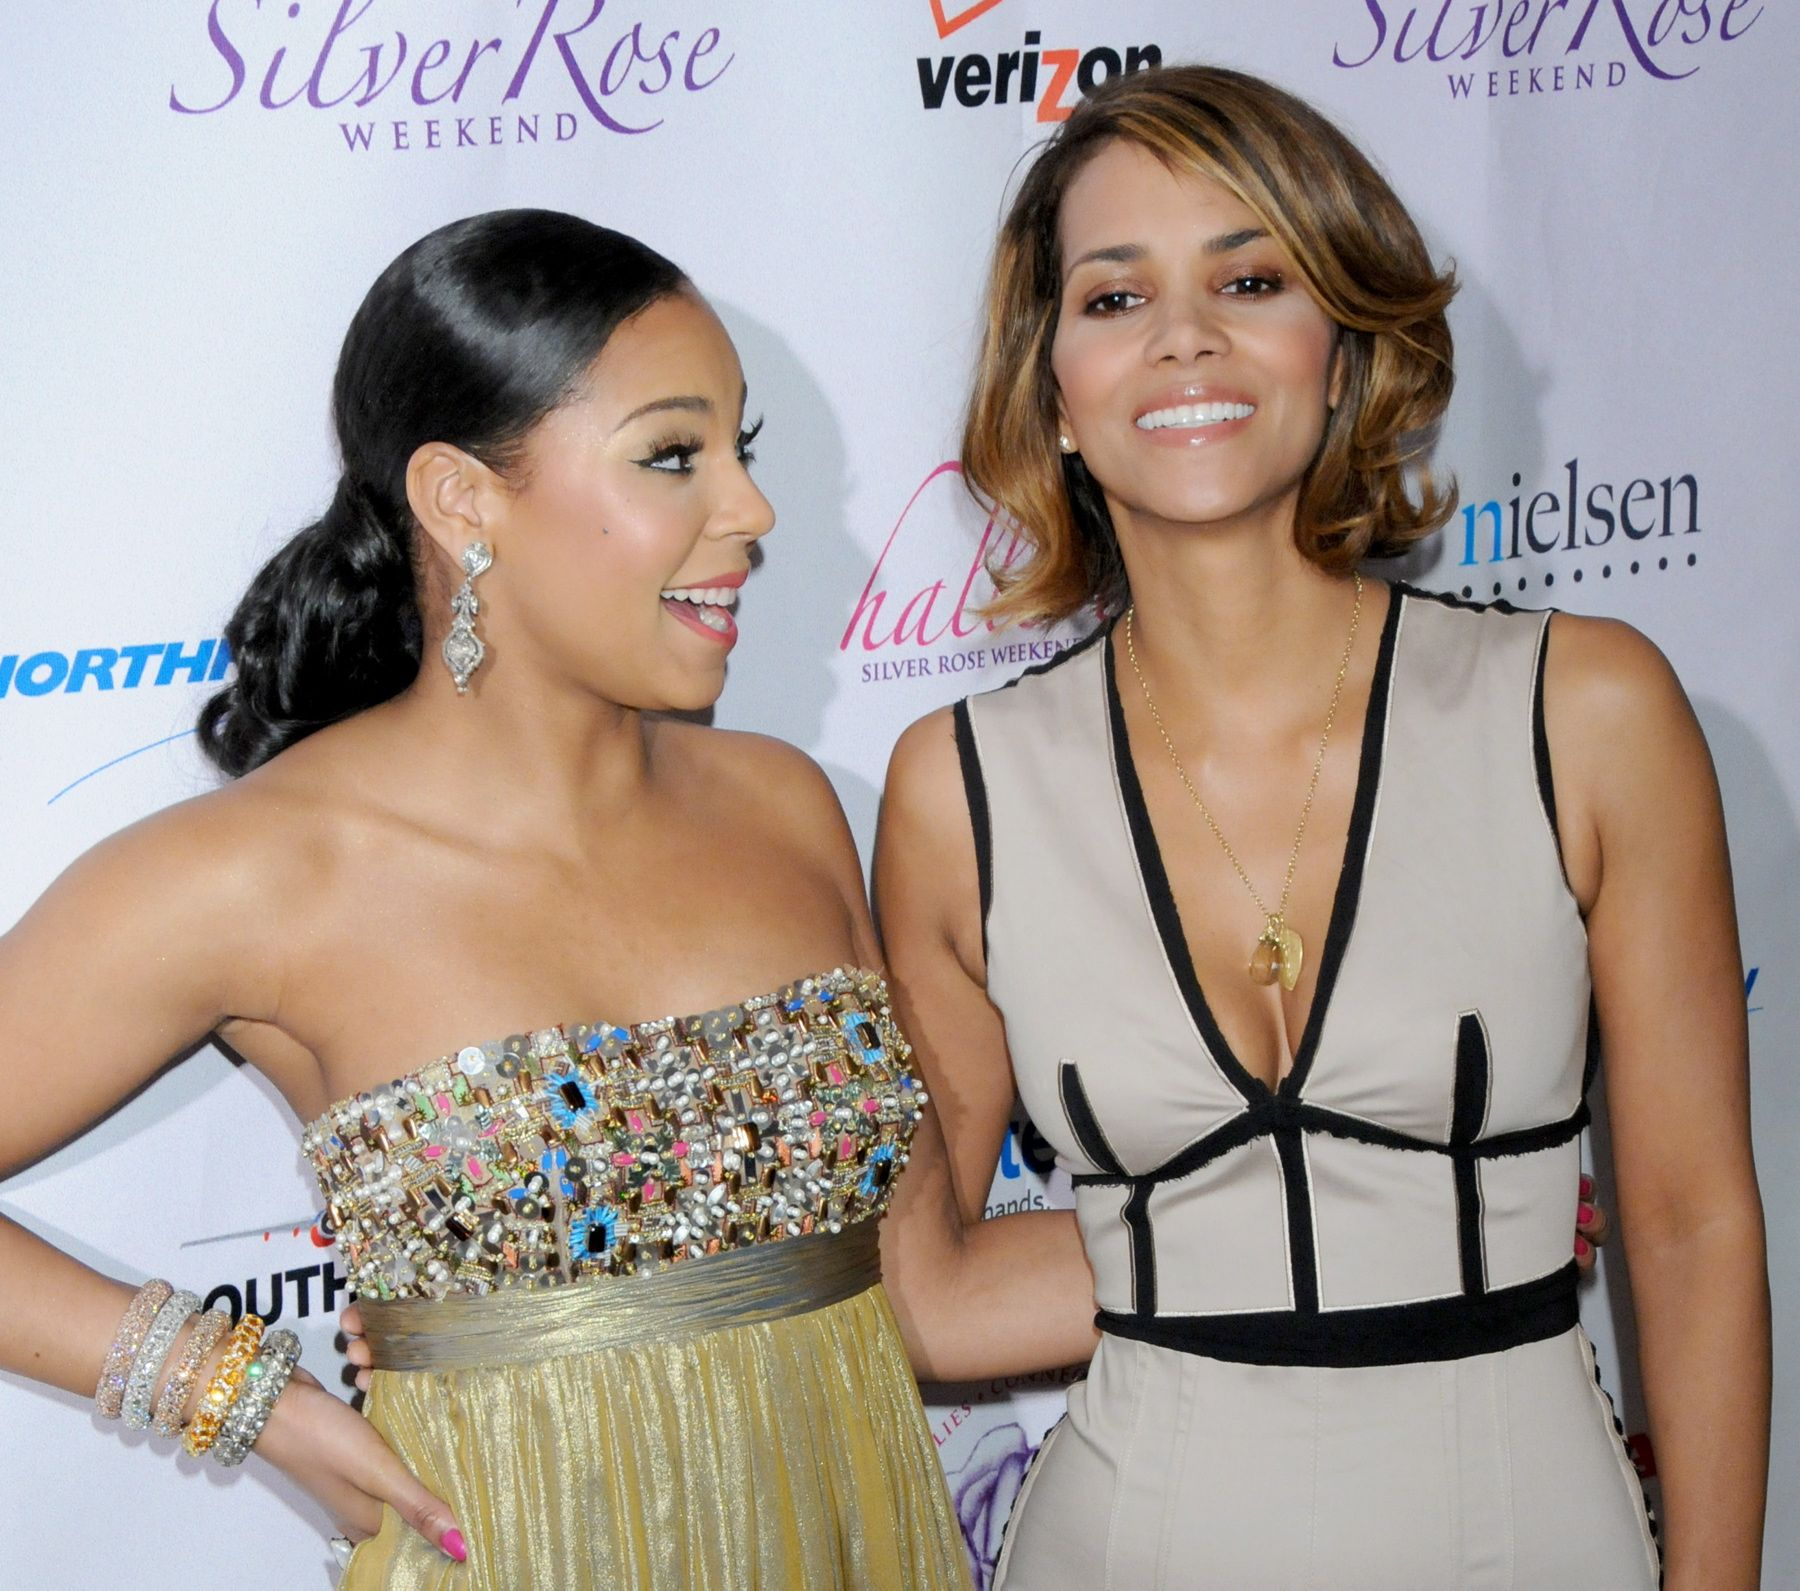 64129_Halle_Berry_2009_Jenesse_Silver_Rose_Gala_Auction_in_Beverly_Hills_110_122_459lo.jpg